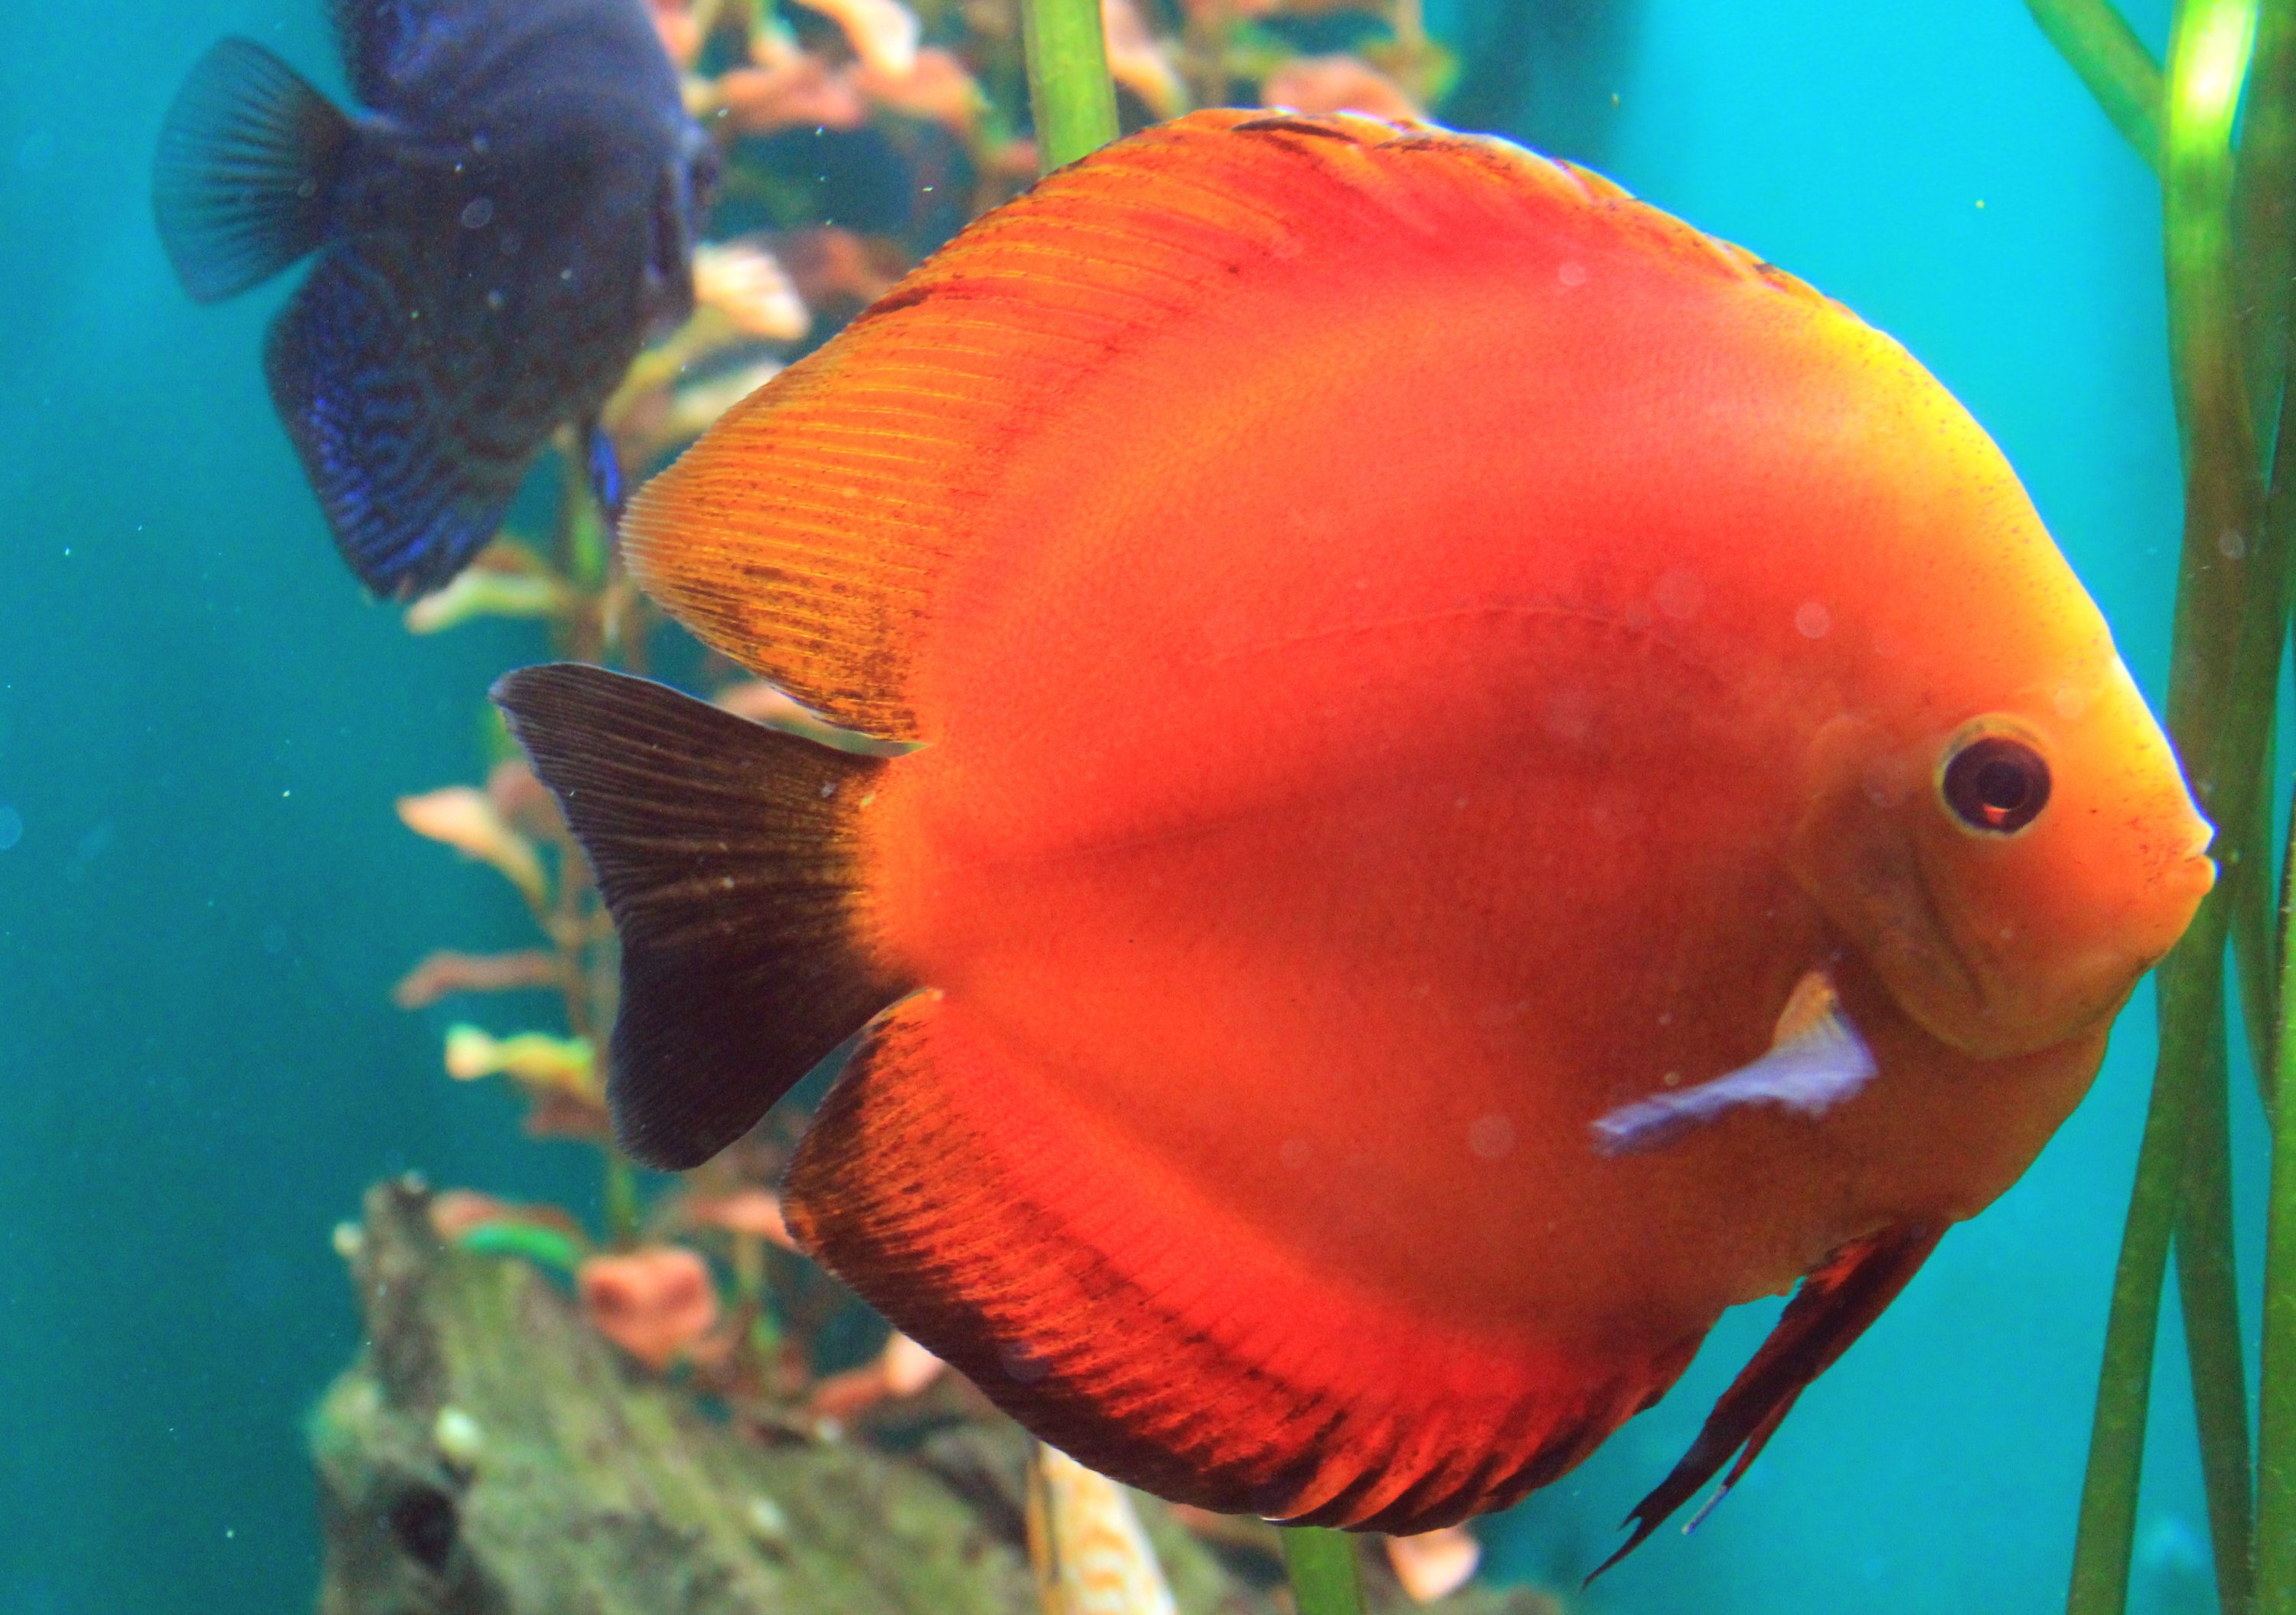 Image From Https Upload Wikimedia Org Wikipedia Commons B B5 Symphysodon Discus Prague 2011 1 Jpg Discus Fish Pet Fish Tropical Freshwater Fish